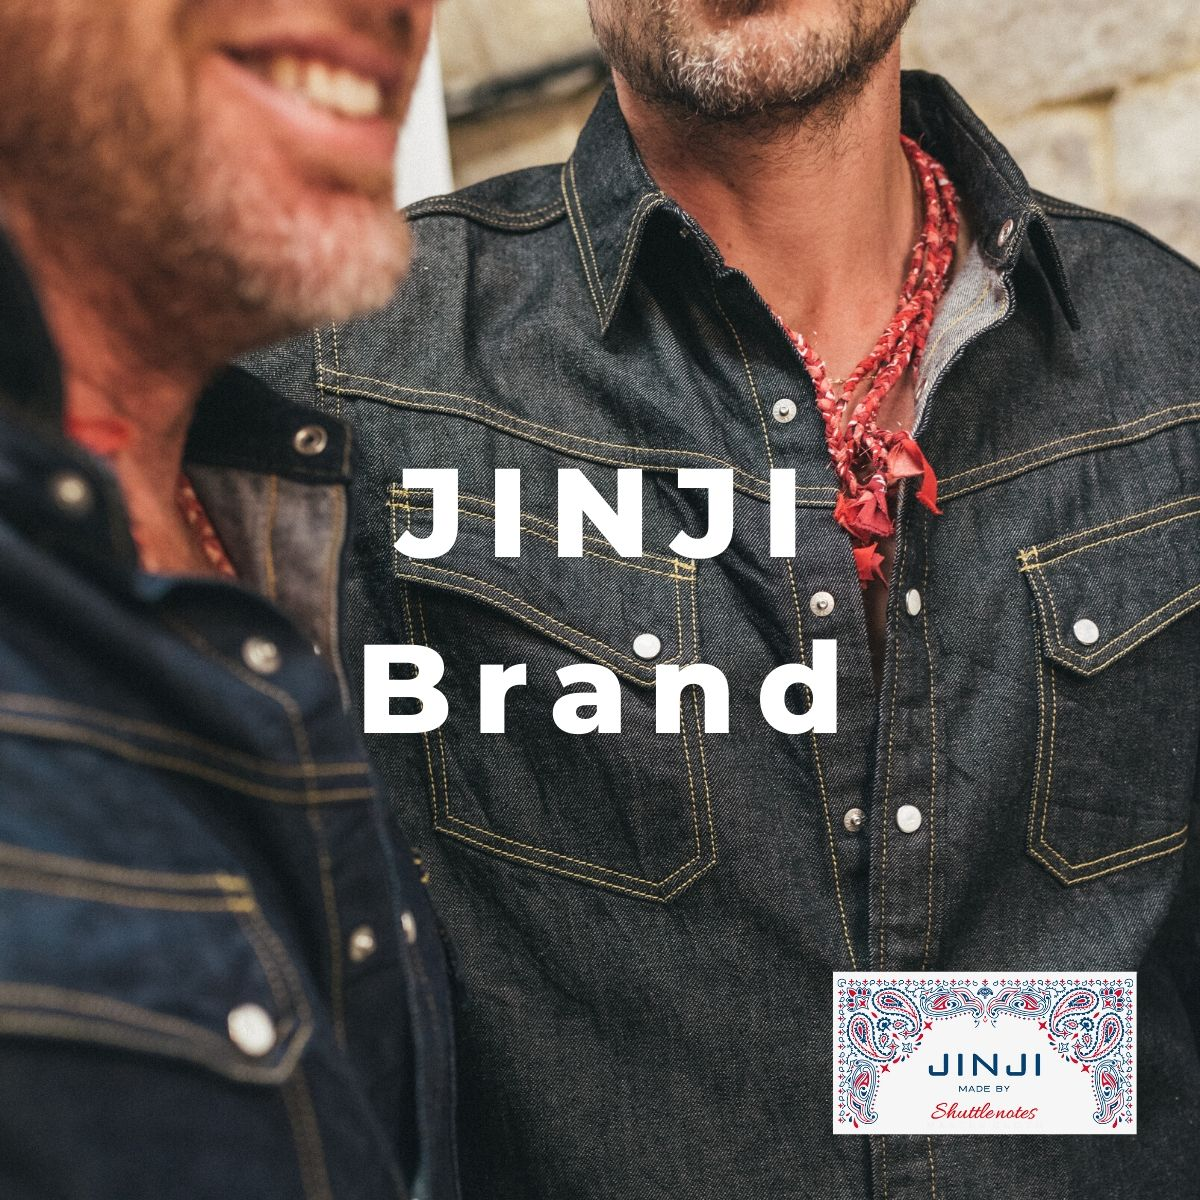 Jinji Brand